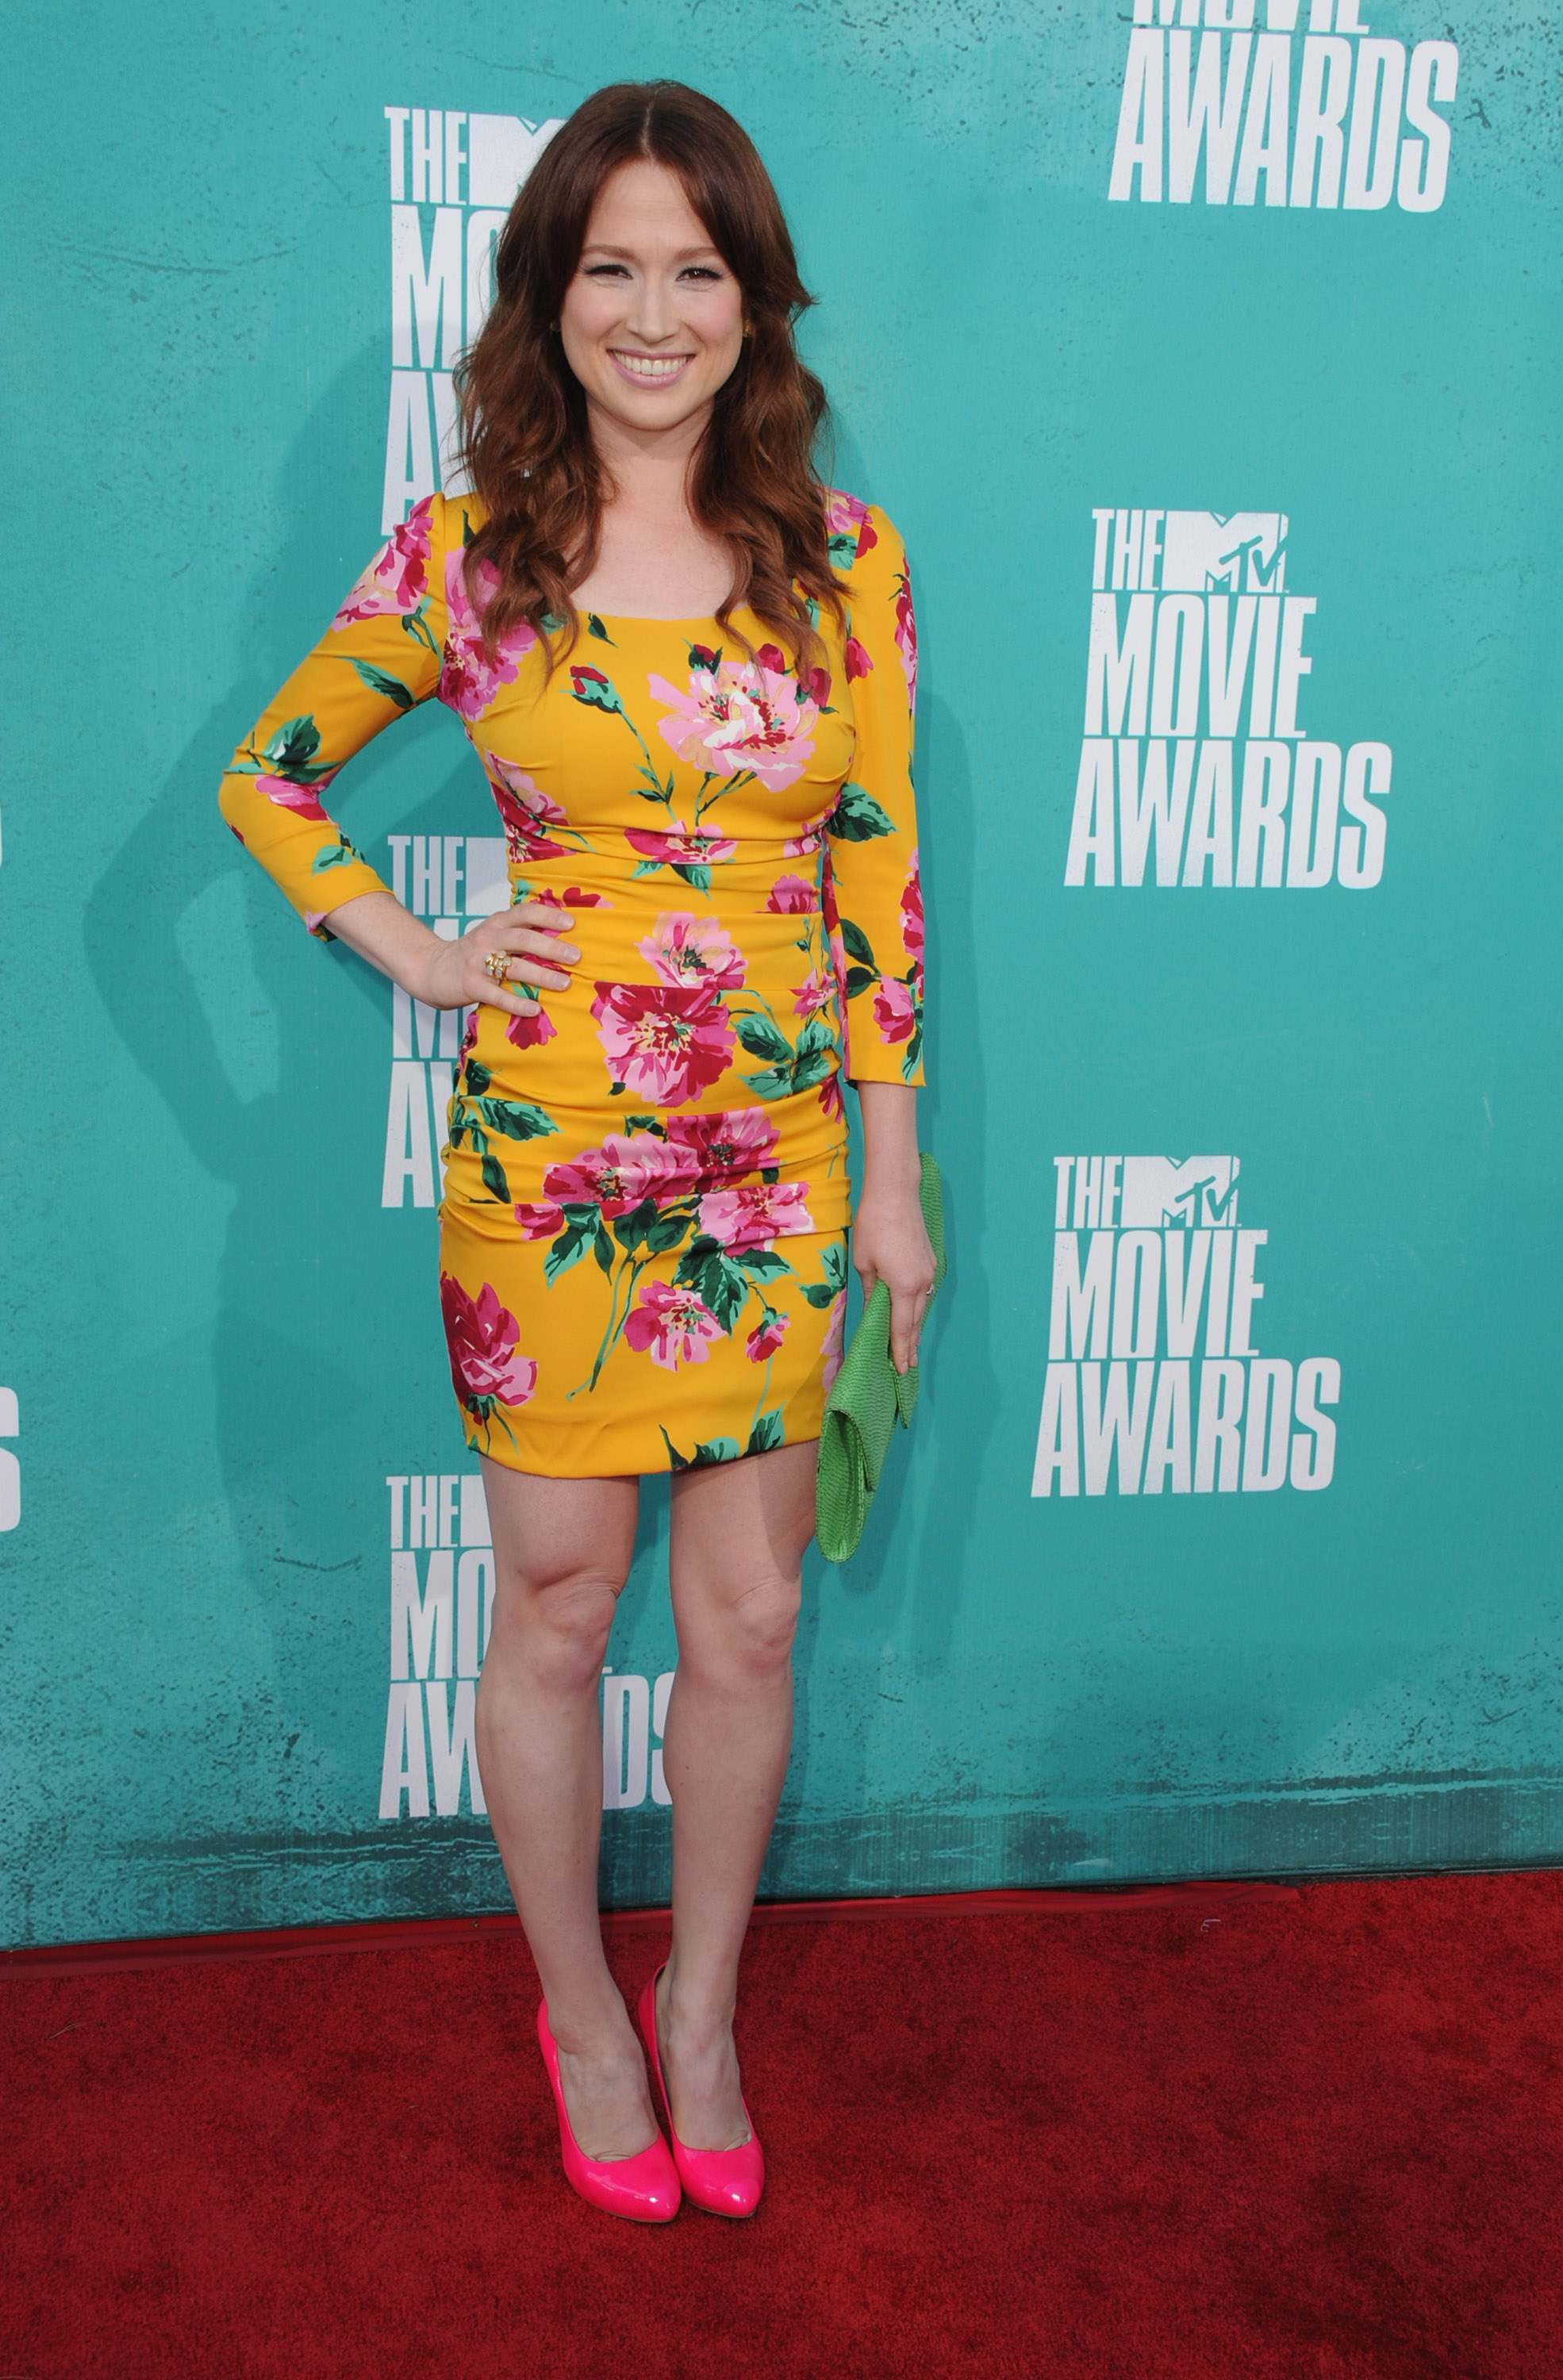 UNIVERSAL CITY, CA - JUNE 03: Actress Ellie Kemper arrives at the 2012 MTV Movie Awards at Gibson Amphitheatre on June 3, 2012 in Universal City, California. (Photo by Steve Granitz/WireImage)